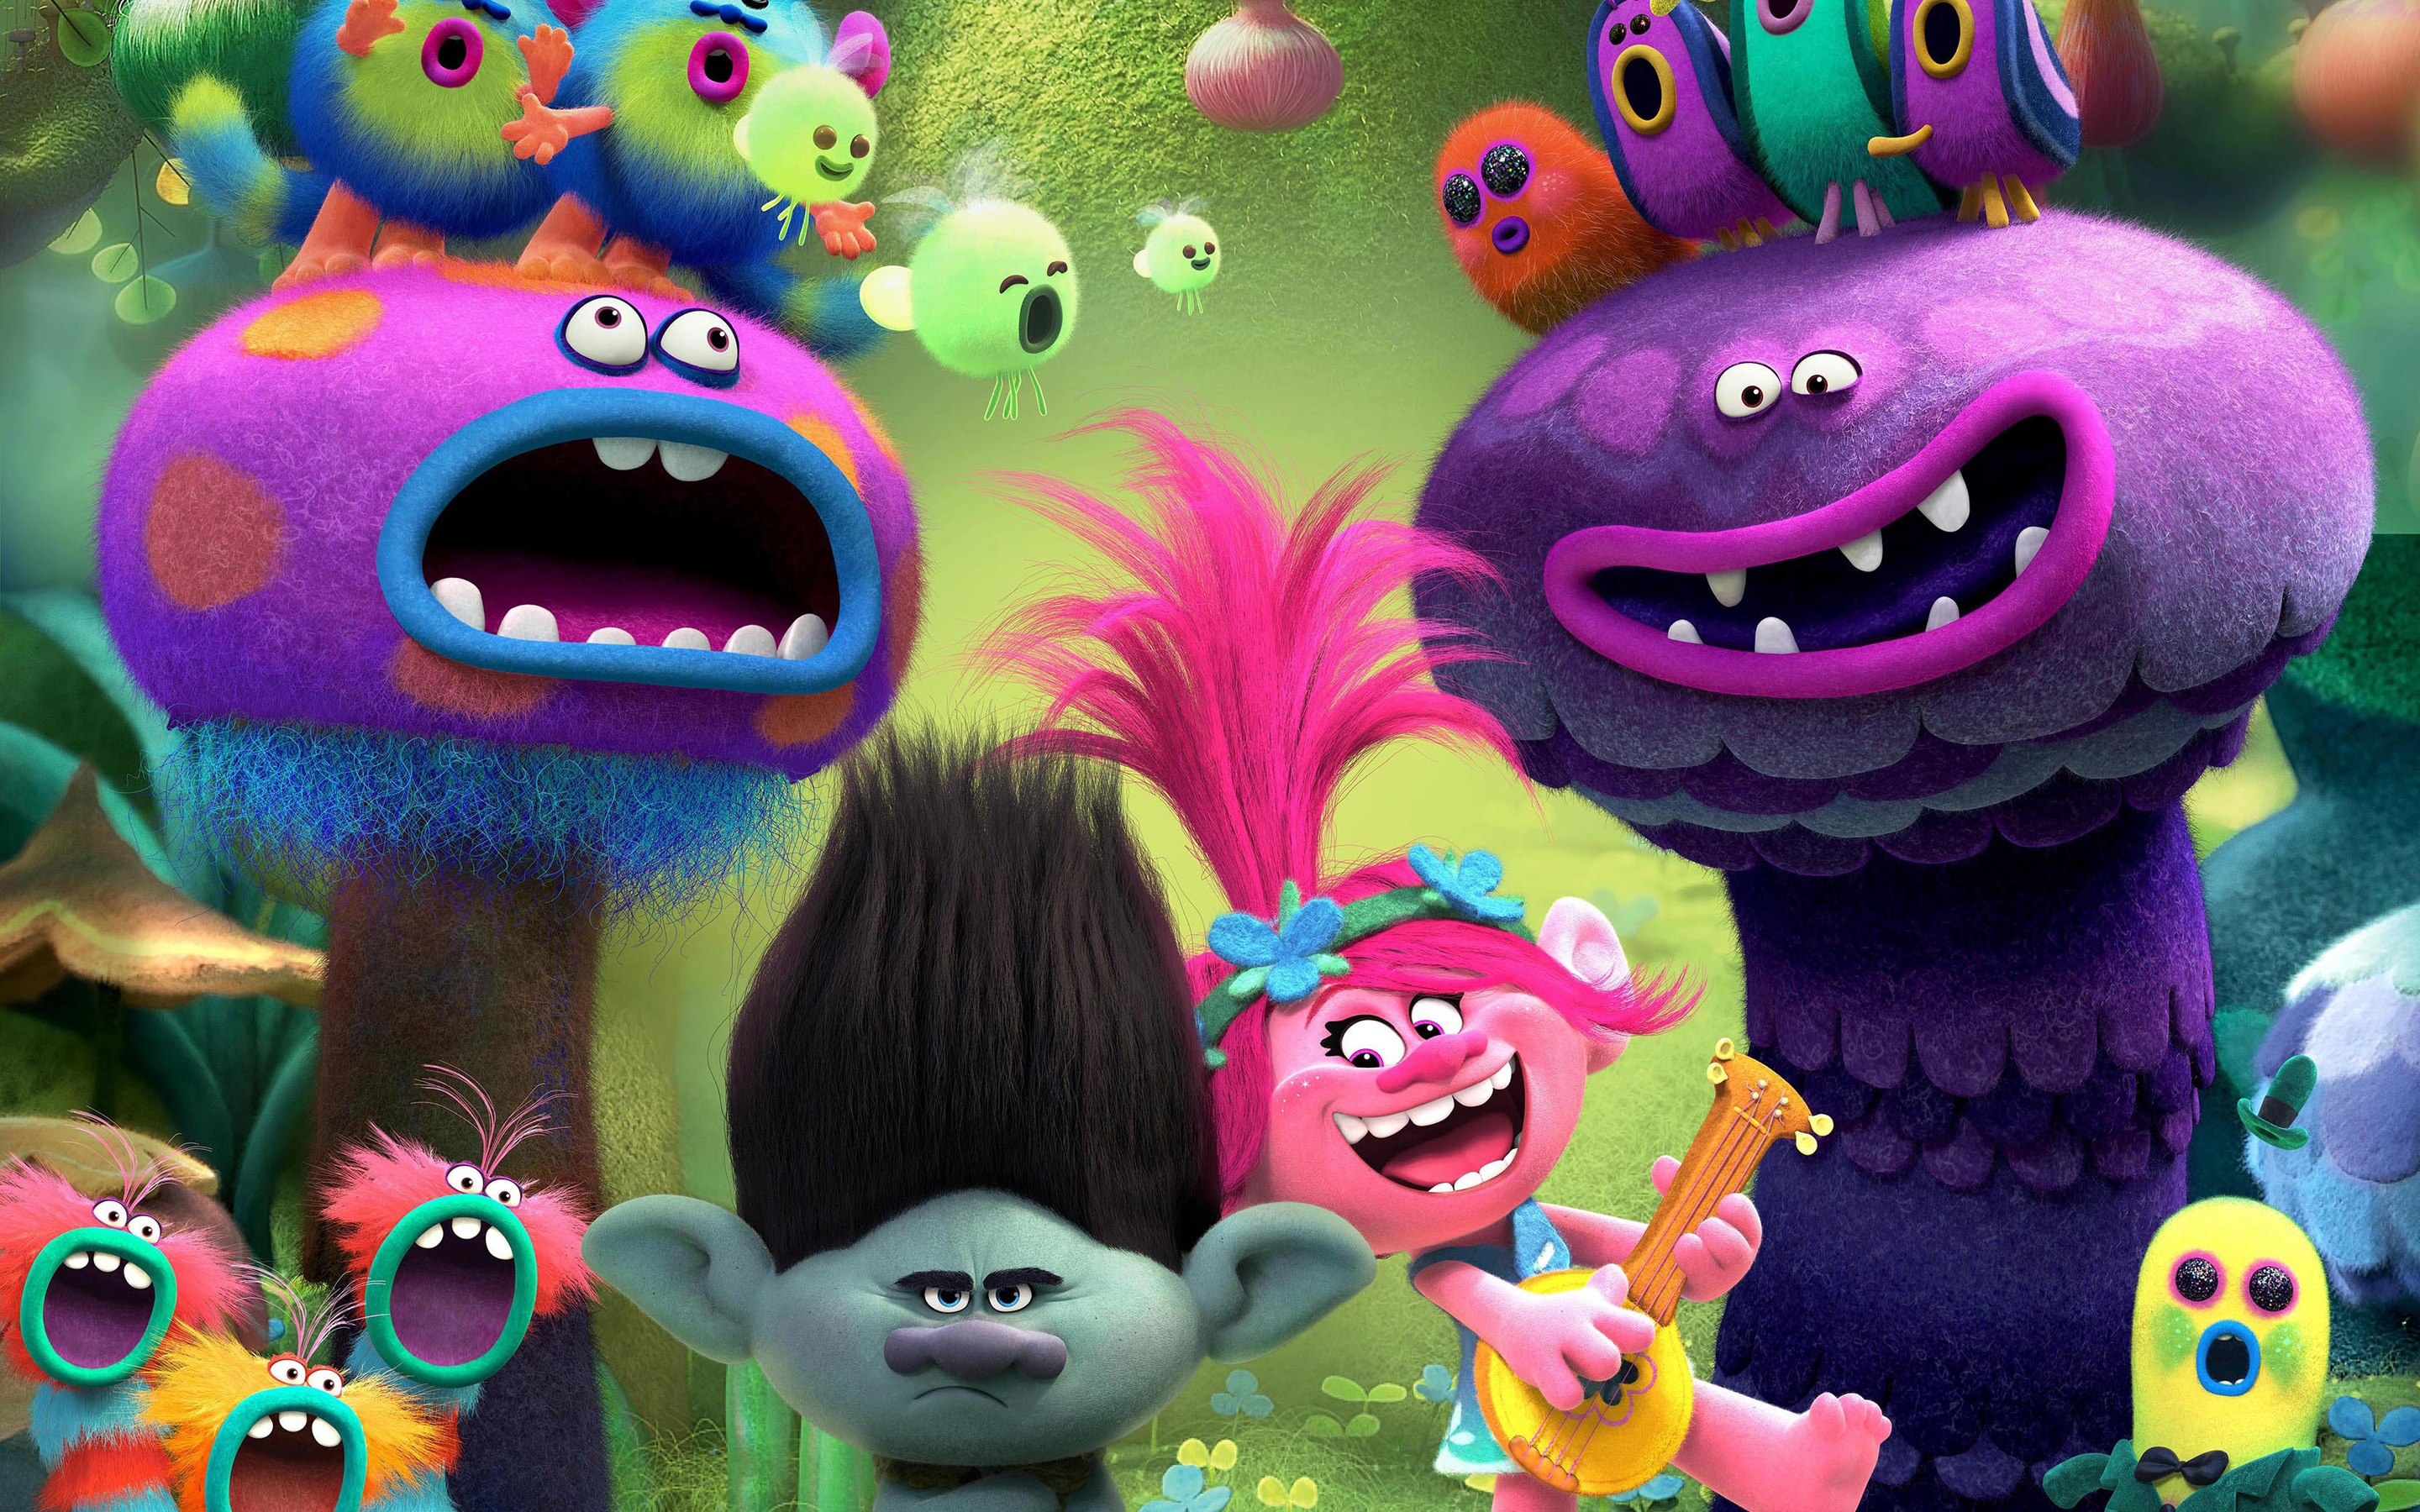 Wallpaper Trolls 2016 2880x1800 Hd Picture Image